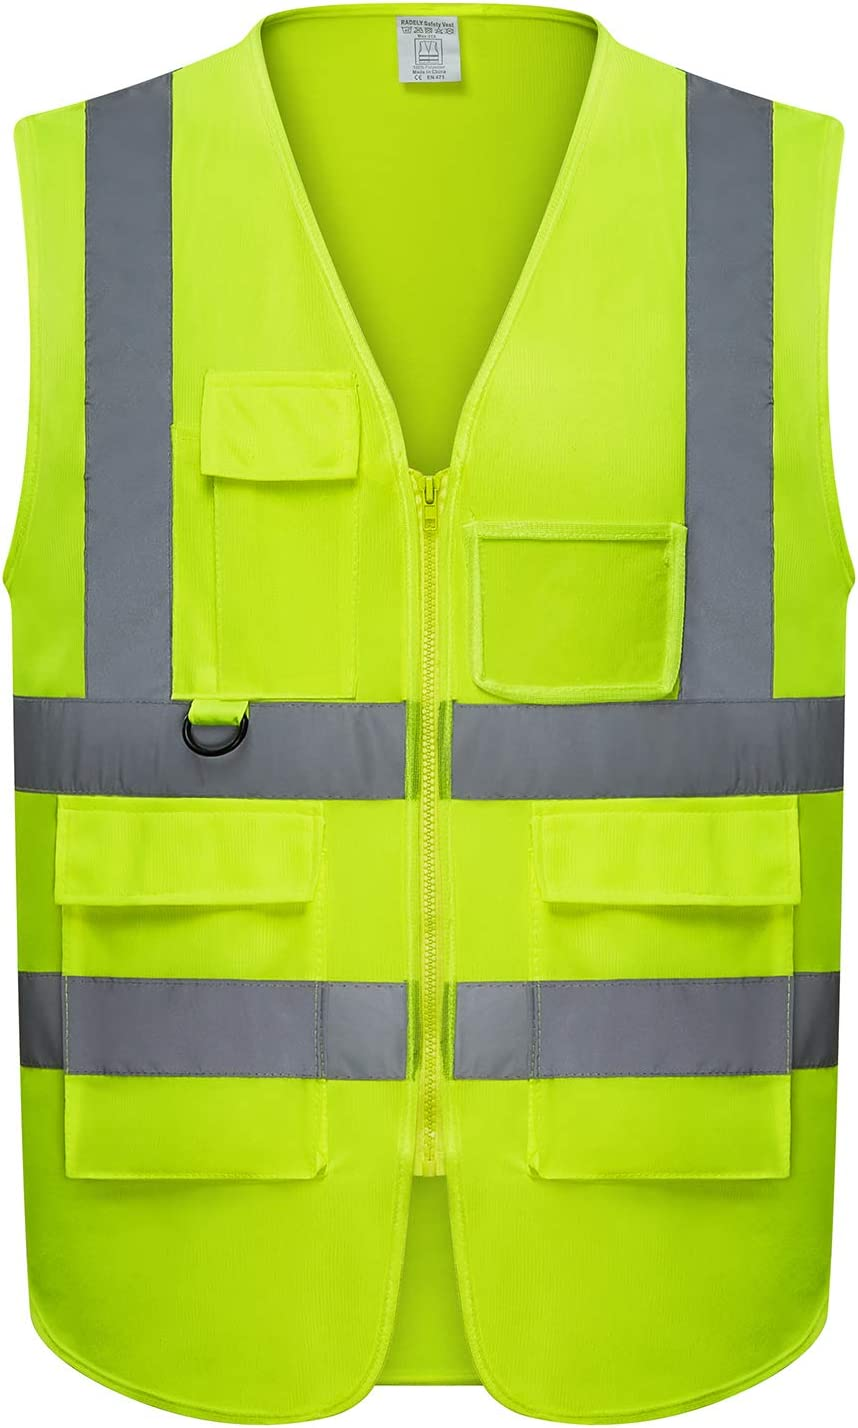 Safety Vest | 5 Pockets | High Visibility Reflective Strips | Color Neon Yellow (XL)